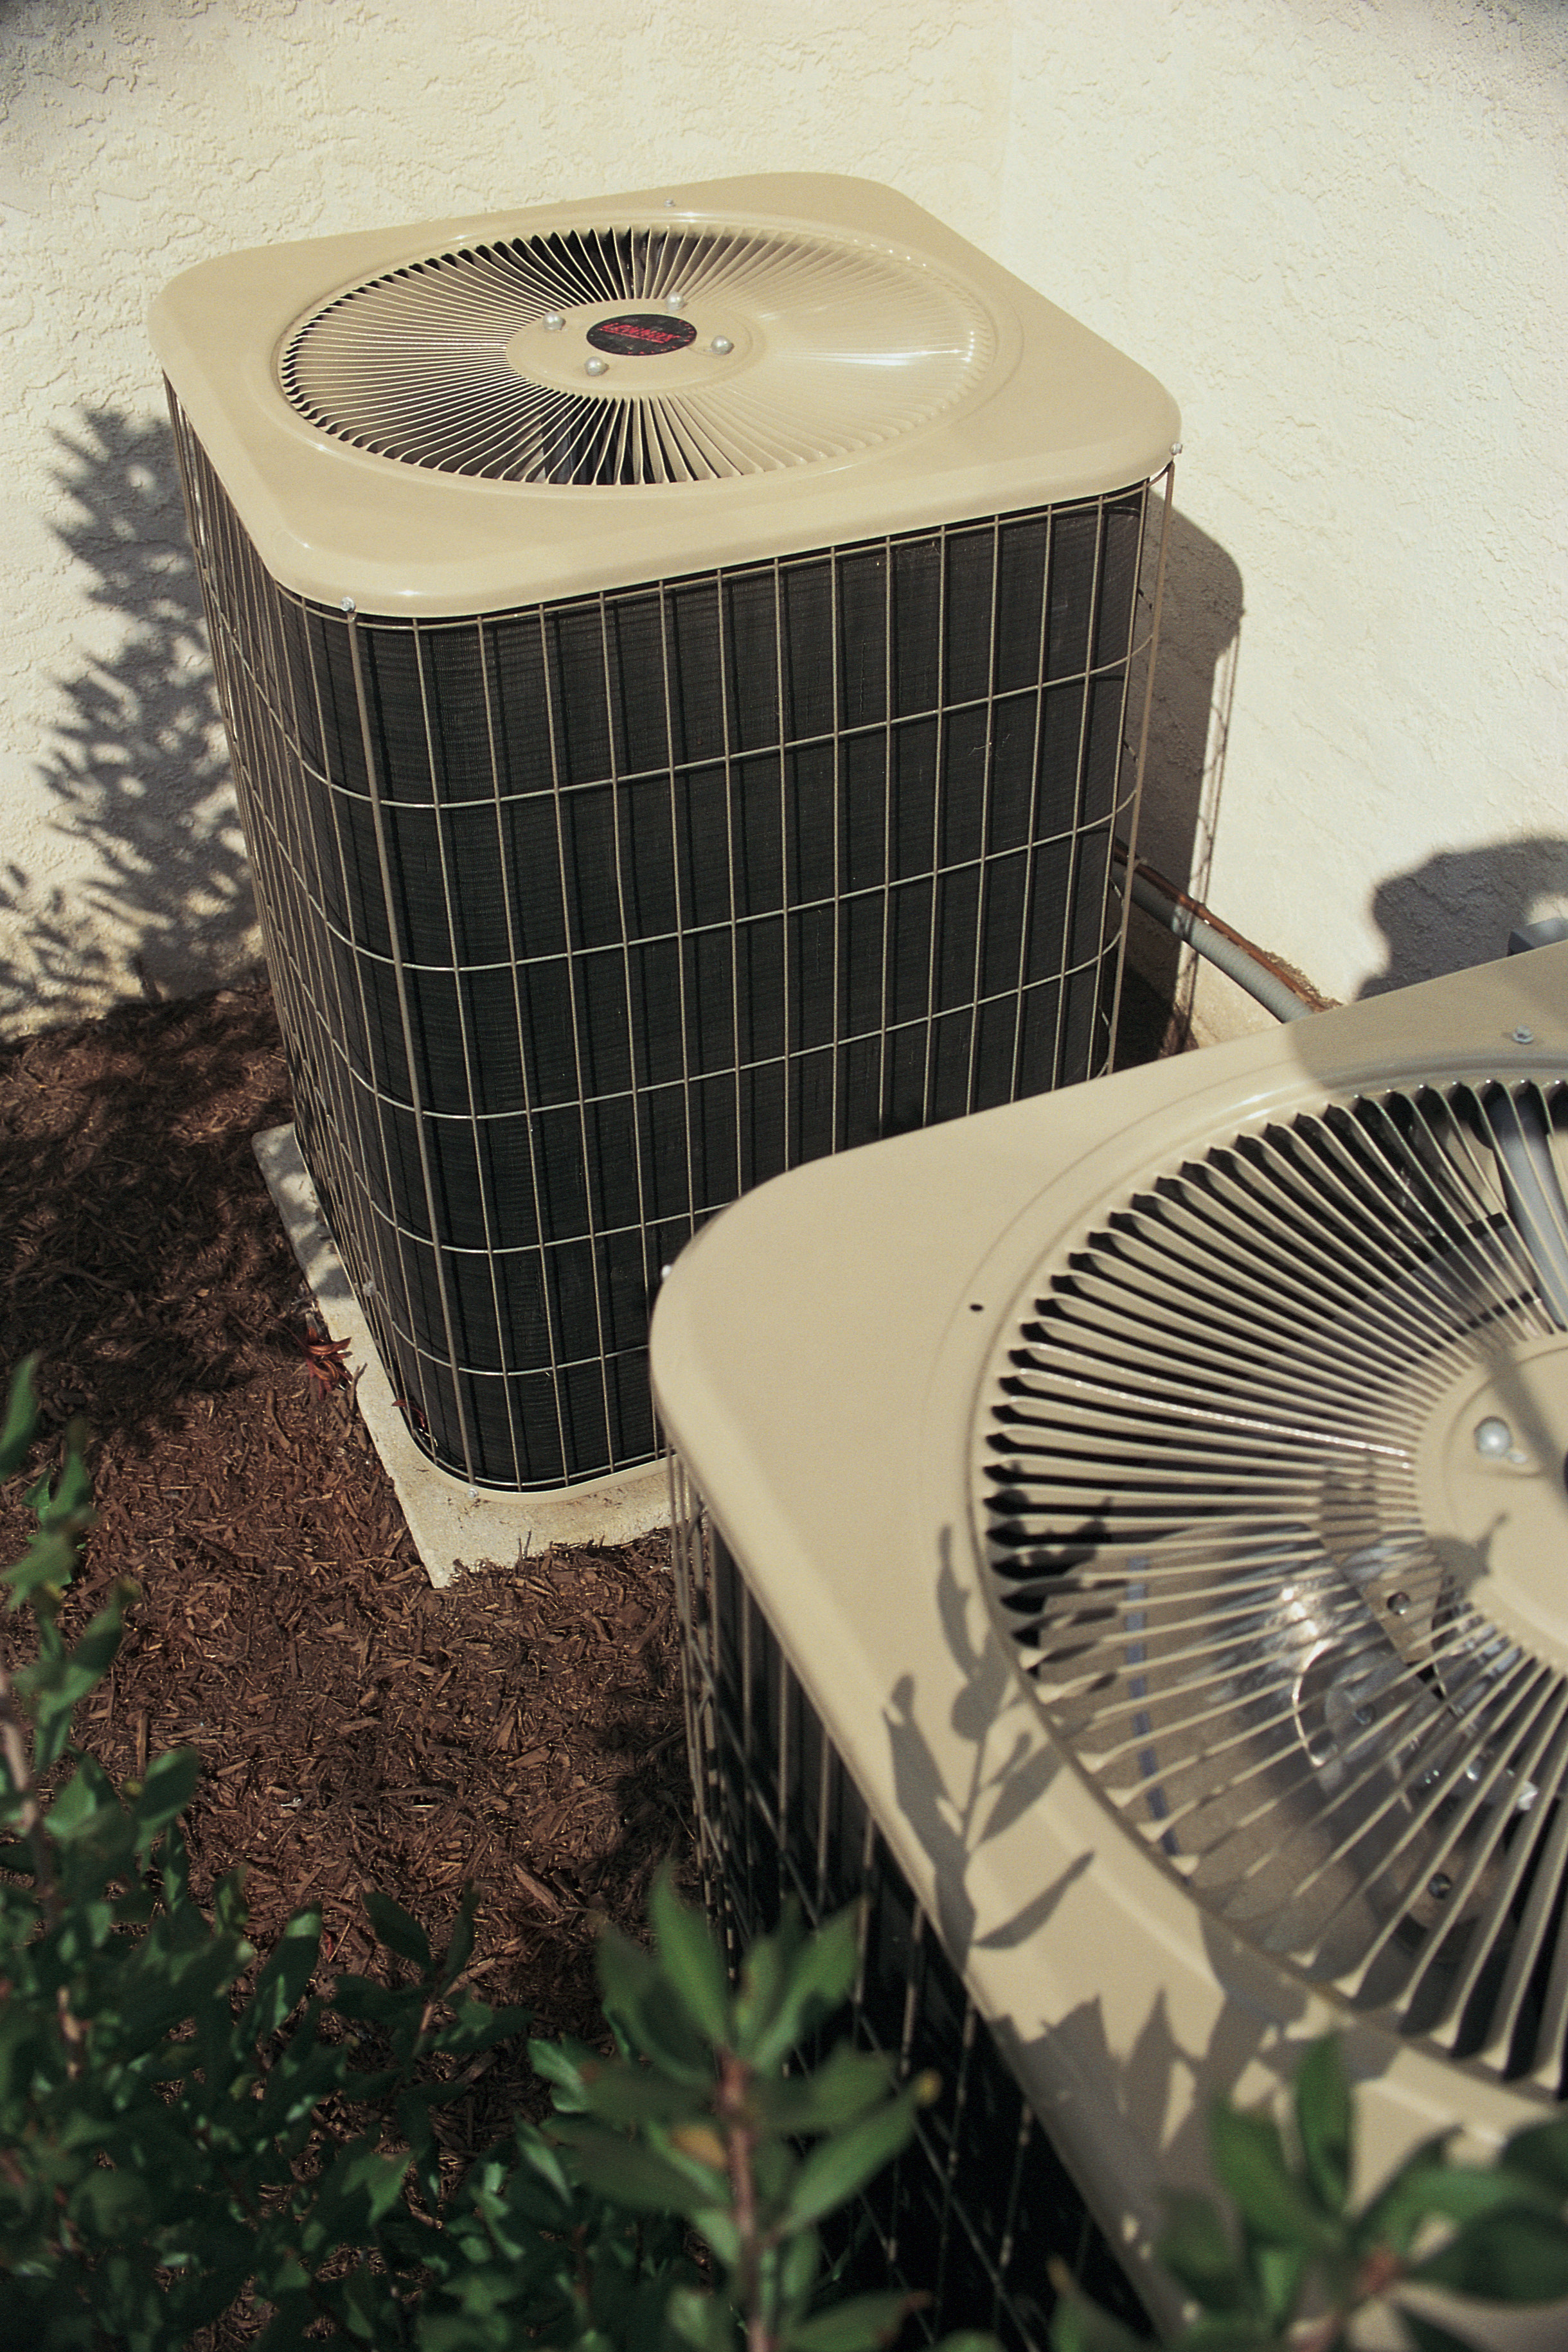 How Much Water Should Drain From a Central Air Conditioner? | Hunker